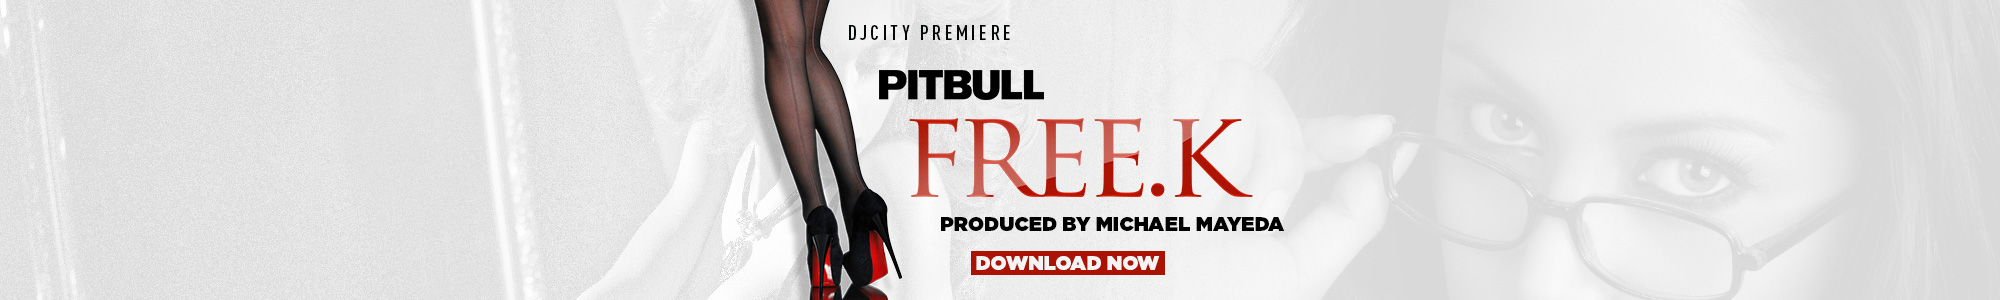 Pitbull Freek Free.k